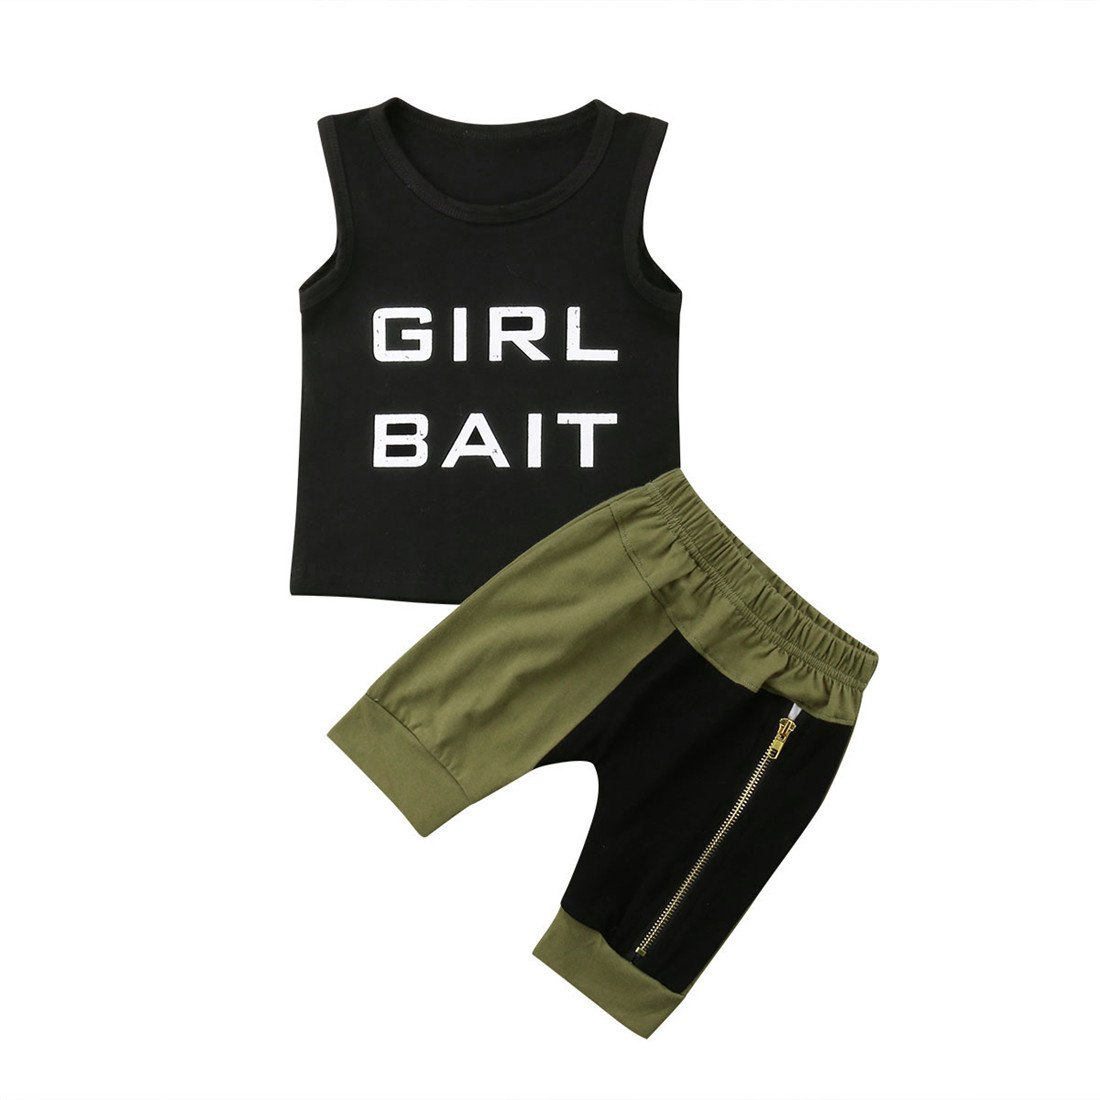 f96ad0578 Super cool fashion two pieces Summer clothes set for baby boys 6 months to  5 years. Sleevess black t-shirt vest with Girl Bait letter print, ...